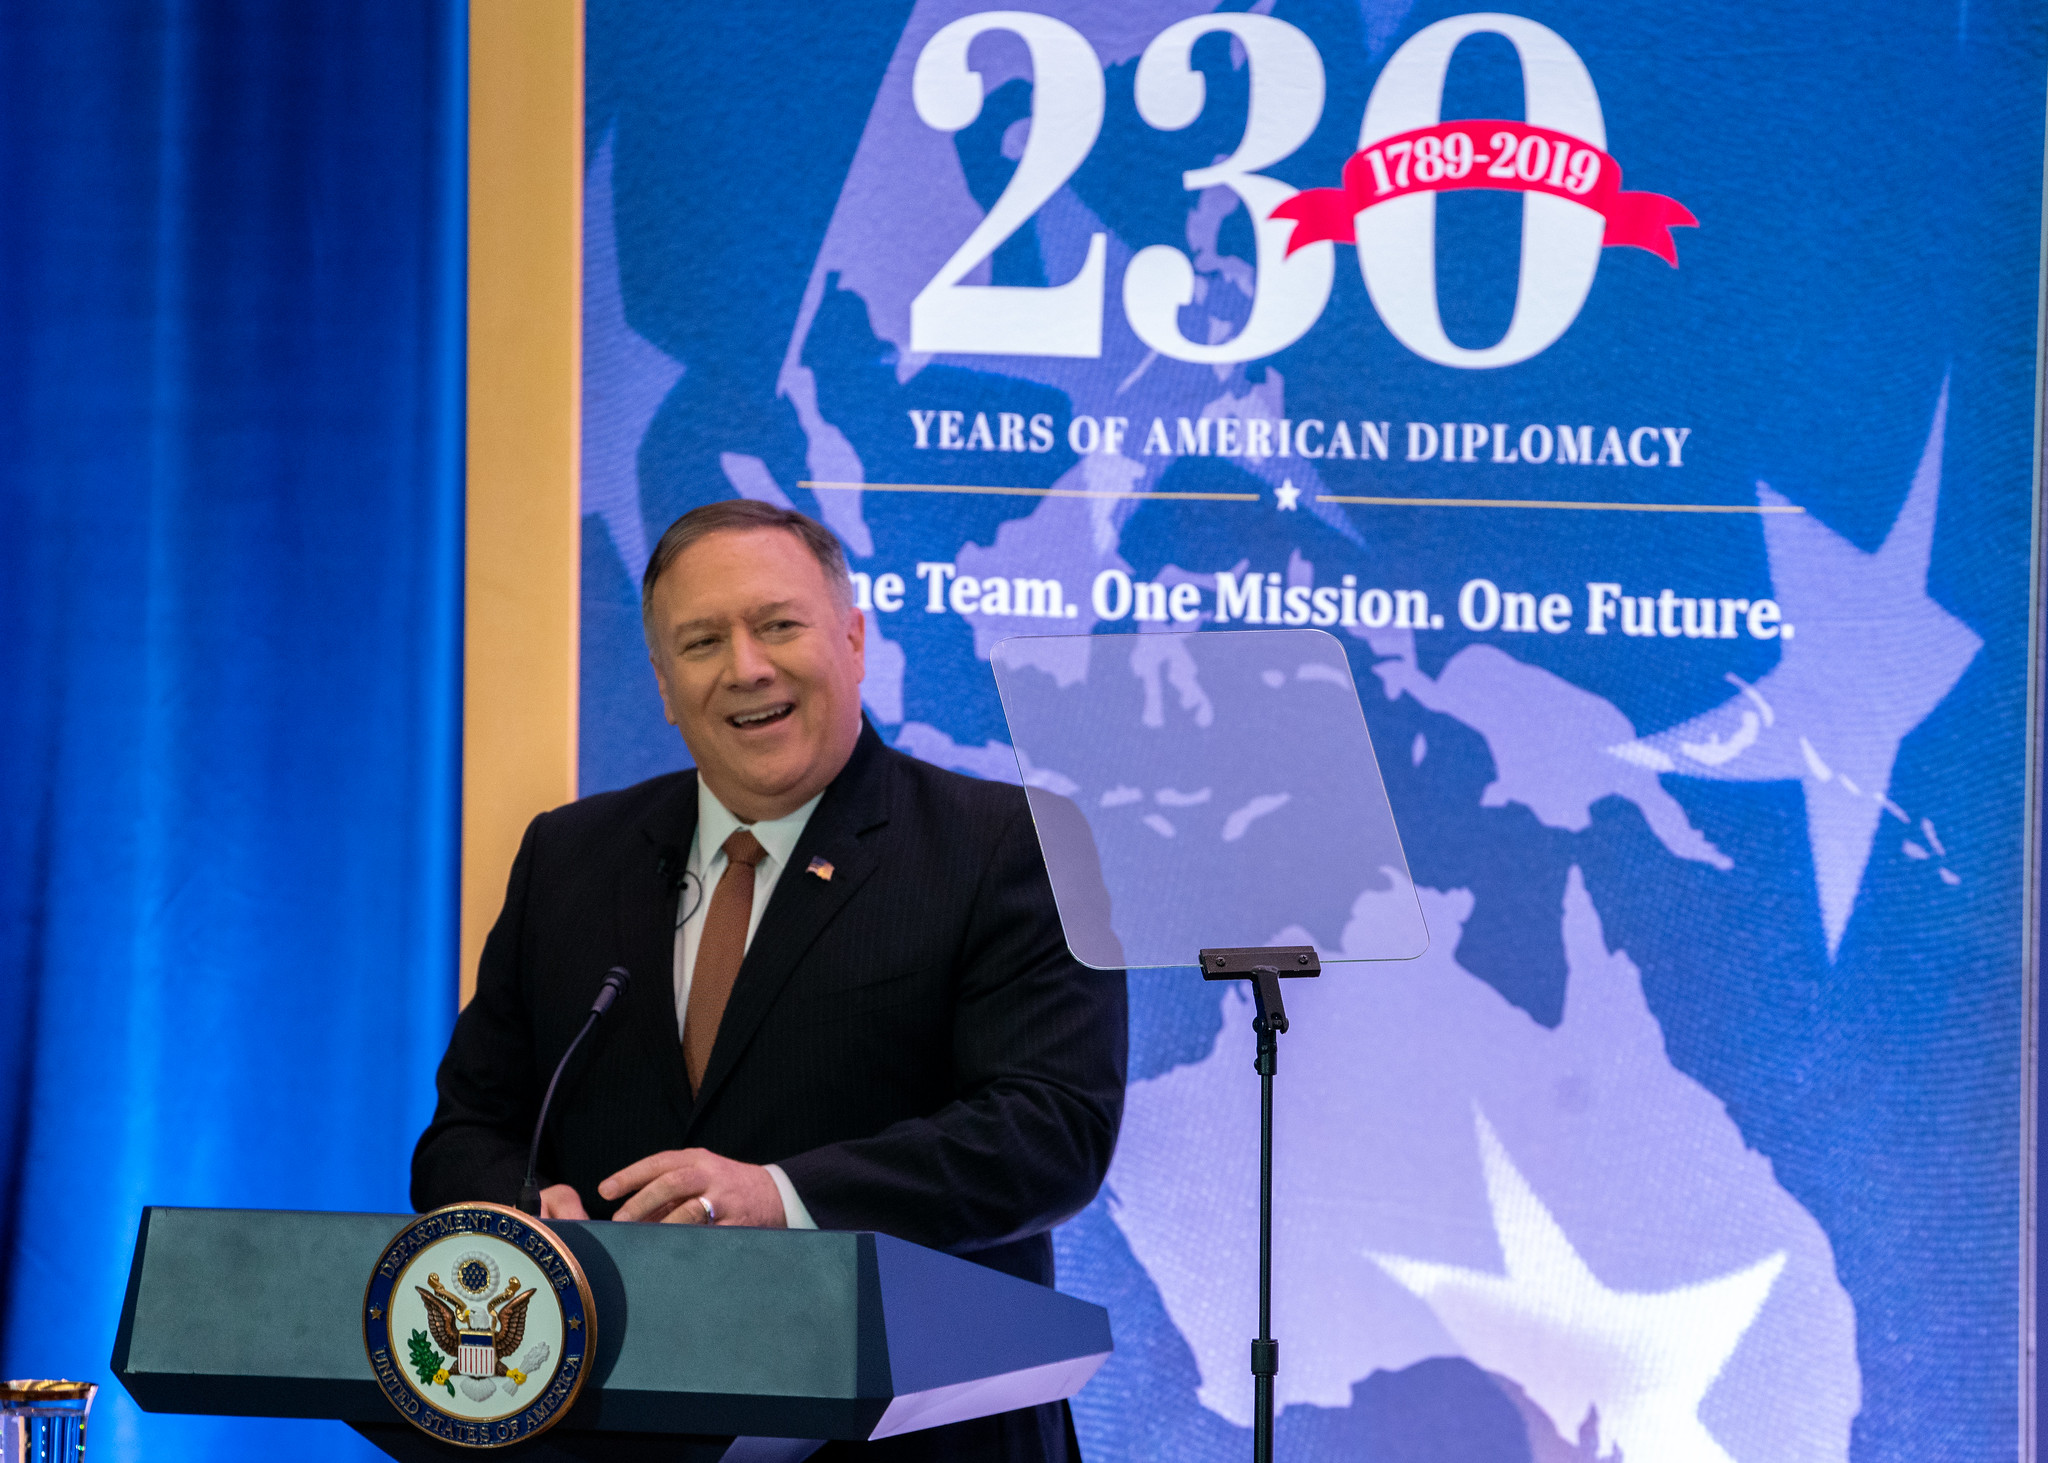 Pompeo speaks in front of 230th anniversary banner